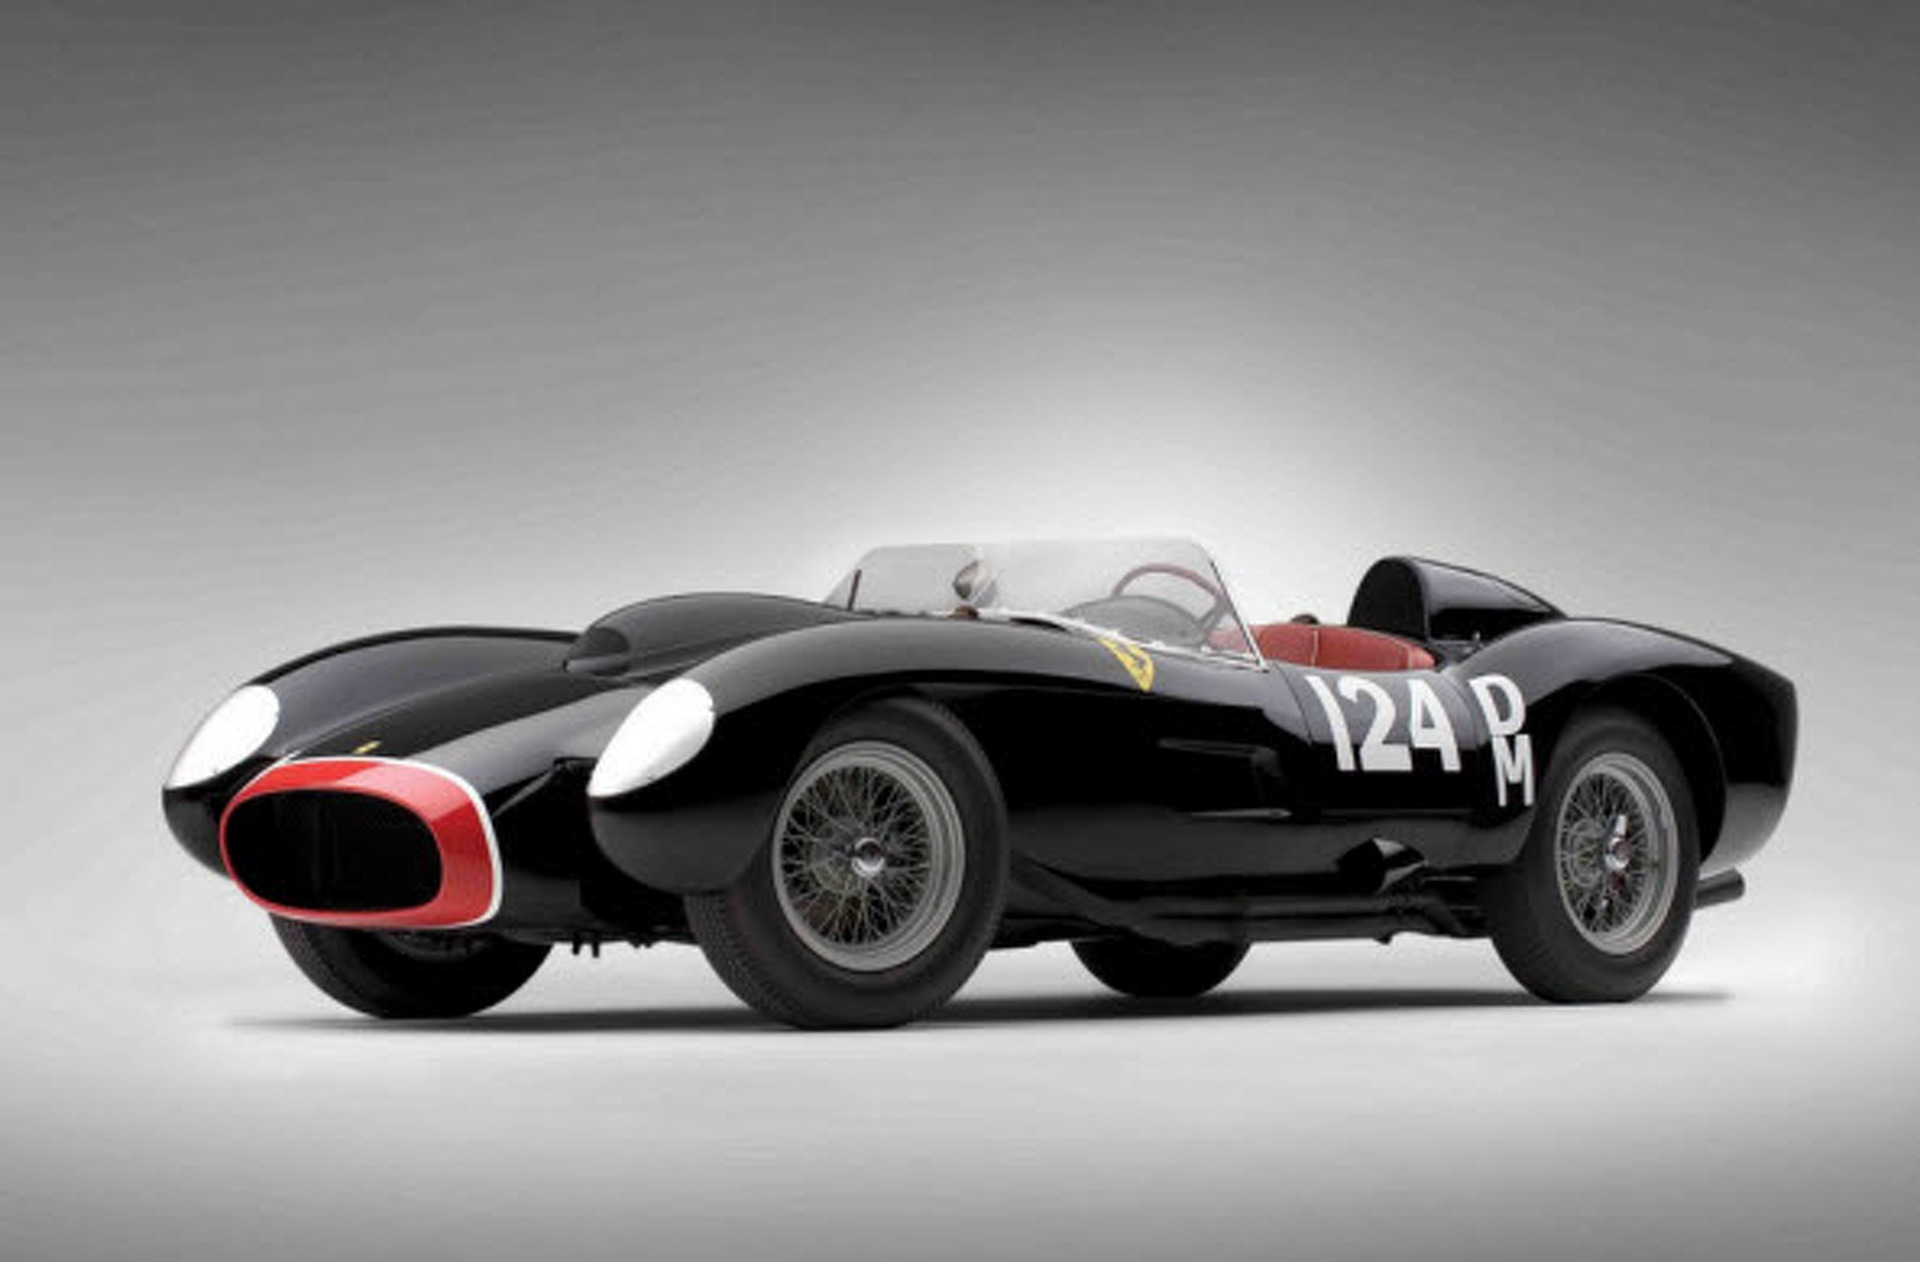 One Percenters: The Top 5 Collector Car Auction Sales